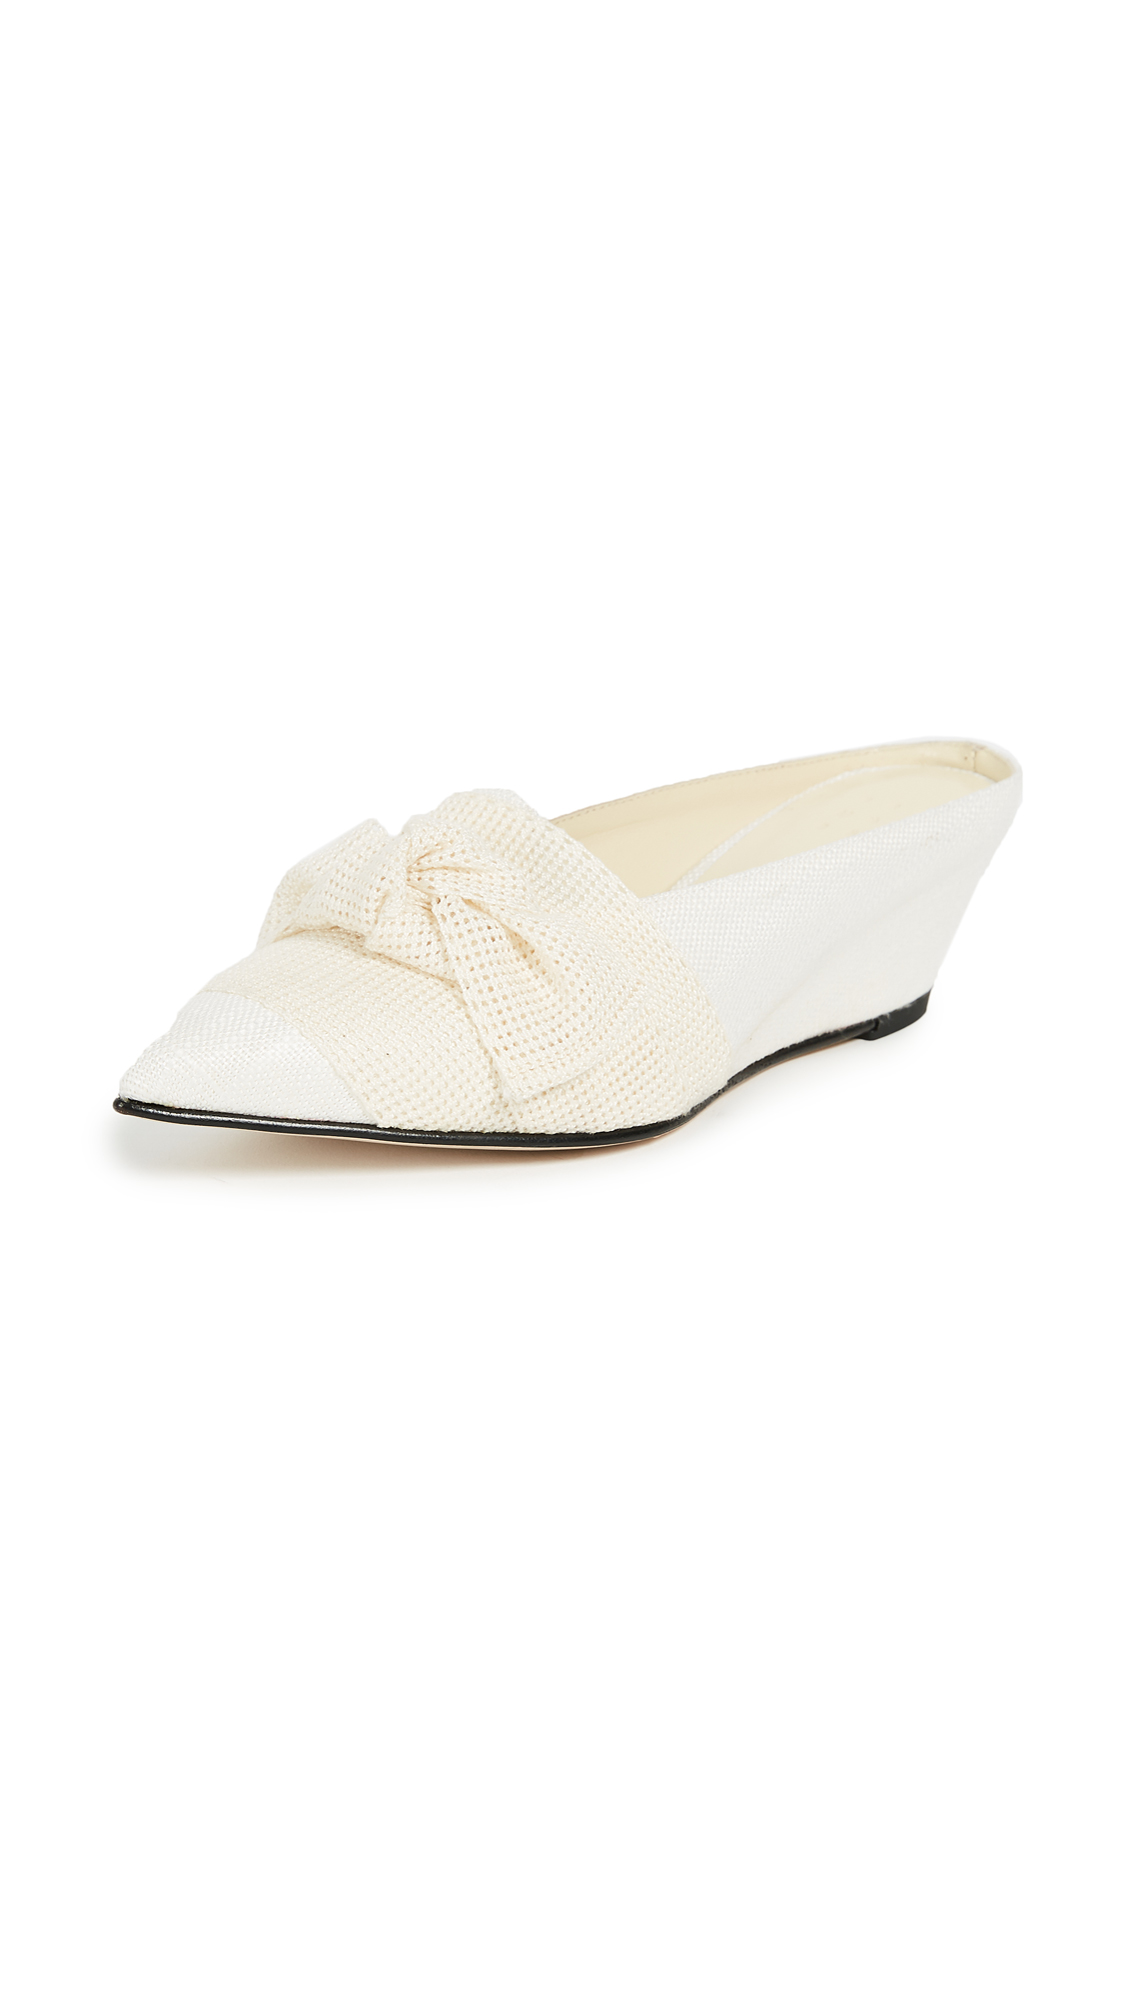 Trademark Adrien Tie Slides - Cream/White